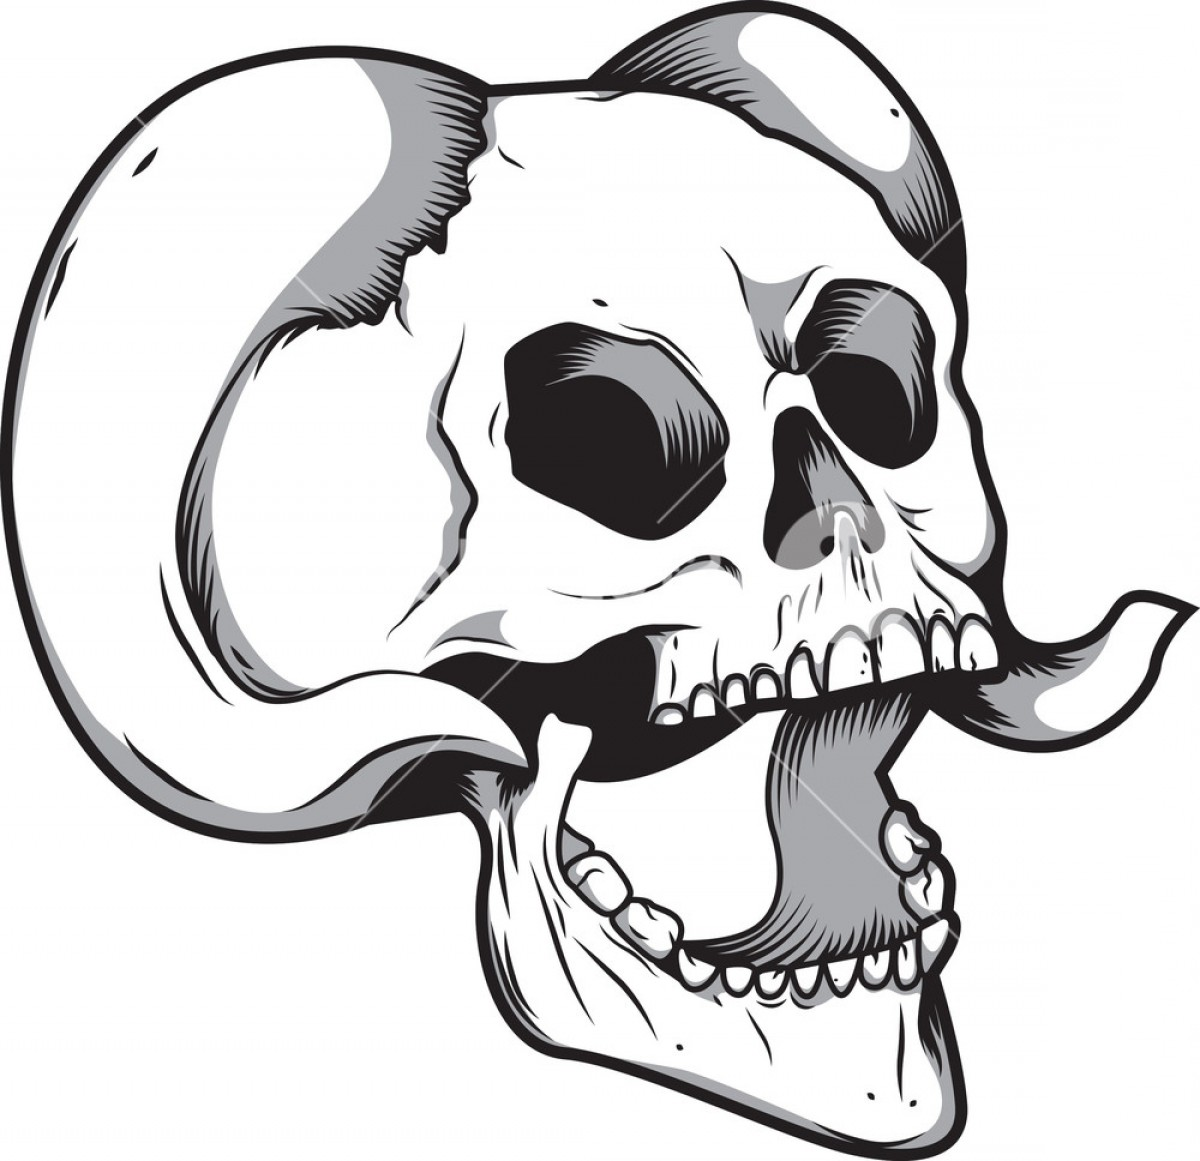 Cool Skull Vector: Skull Vector Element With Horn Rwxexcnnxuzjgmpnmz